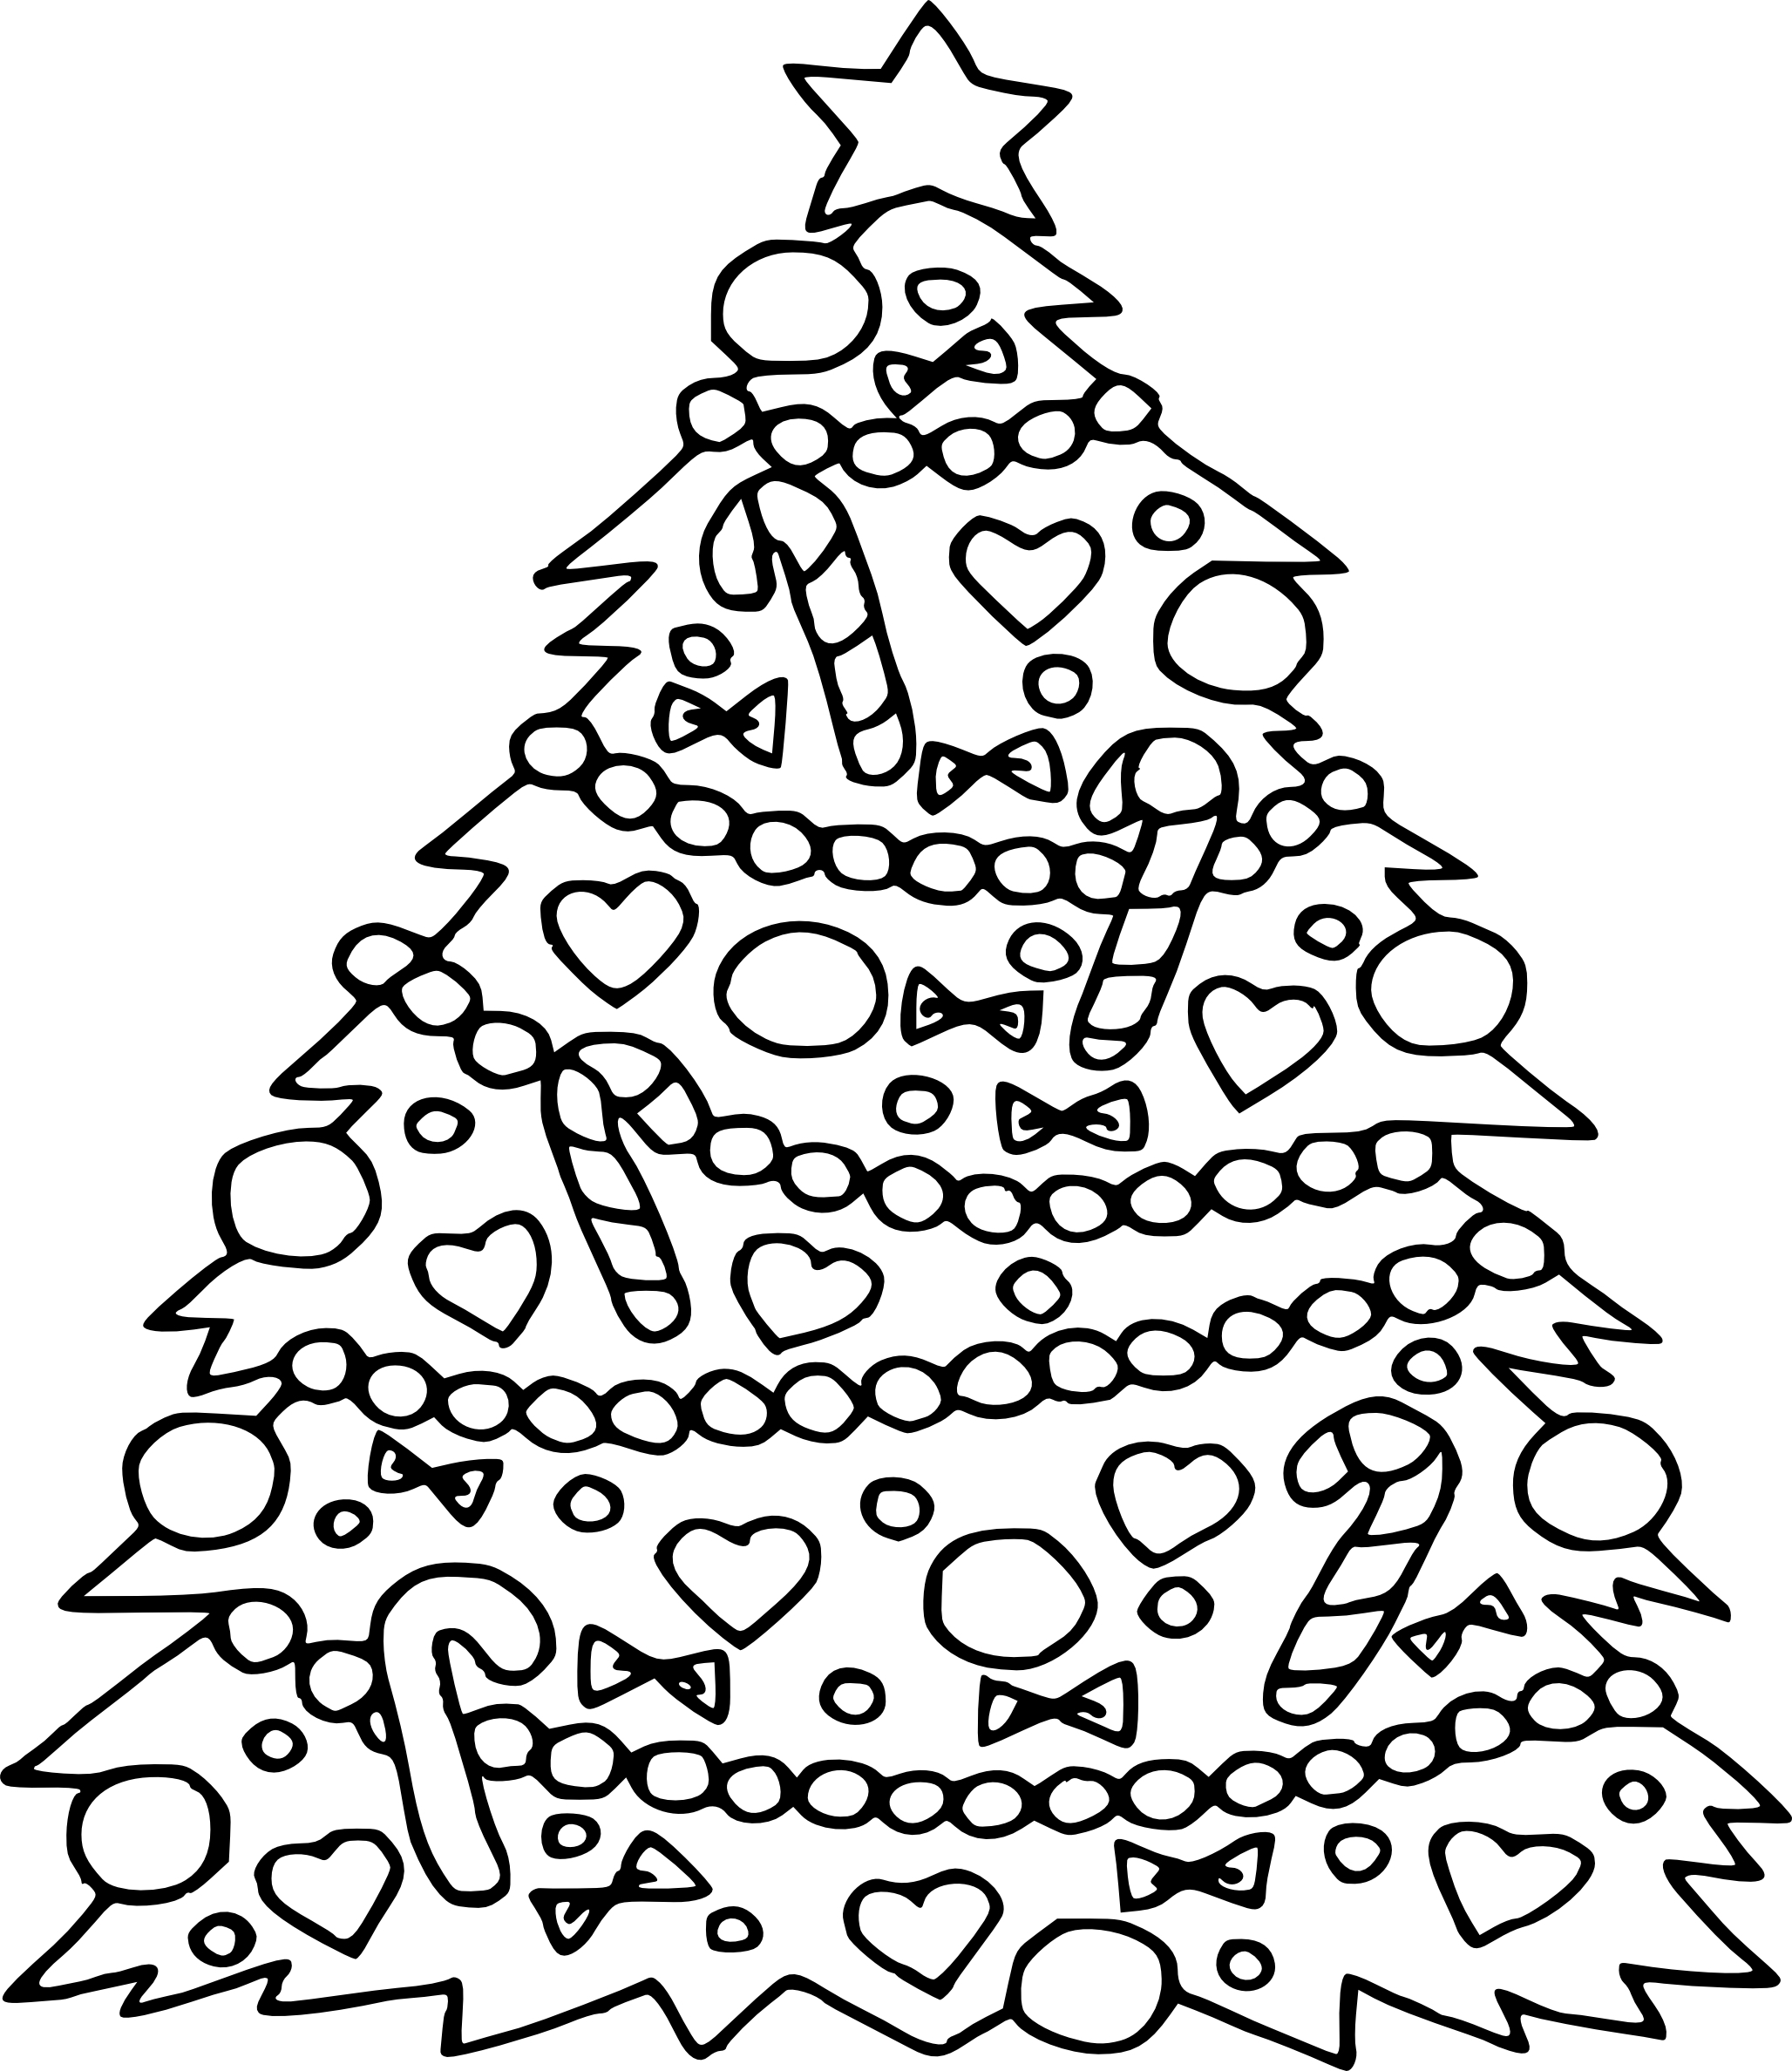 Christmas Tree Coloring Page With Pages Of Trees Printable Free Books